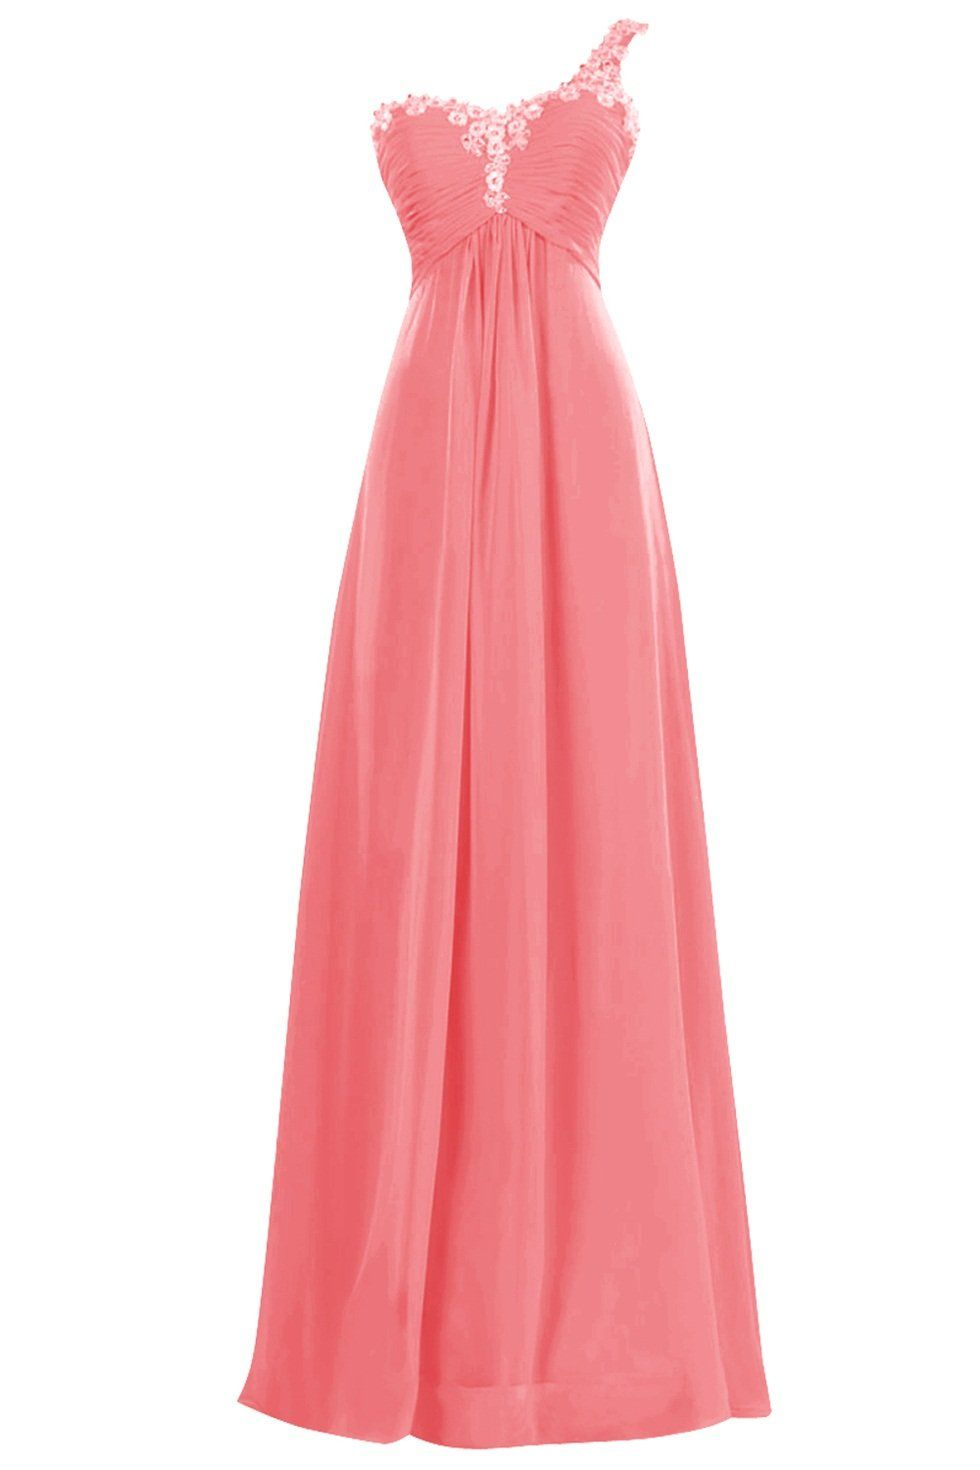 Queenmore womens one shoulder chiffon bridesmaid dress flower queenmore womens one shoulder chiffon bridesmaid dress flower beaded prom gown us16 watermelon ombrellifo Image collections